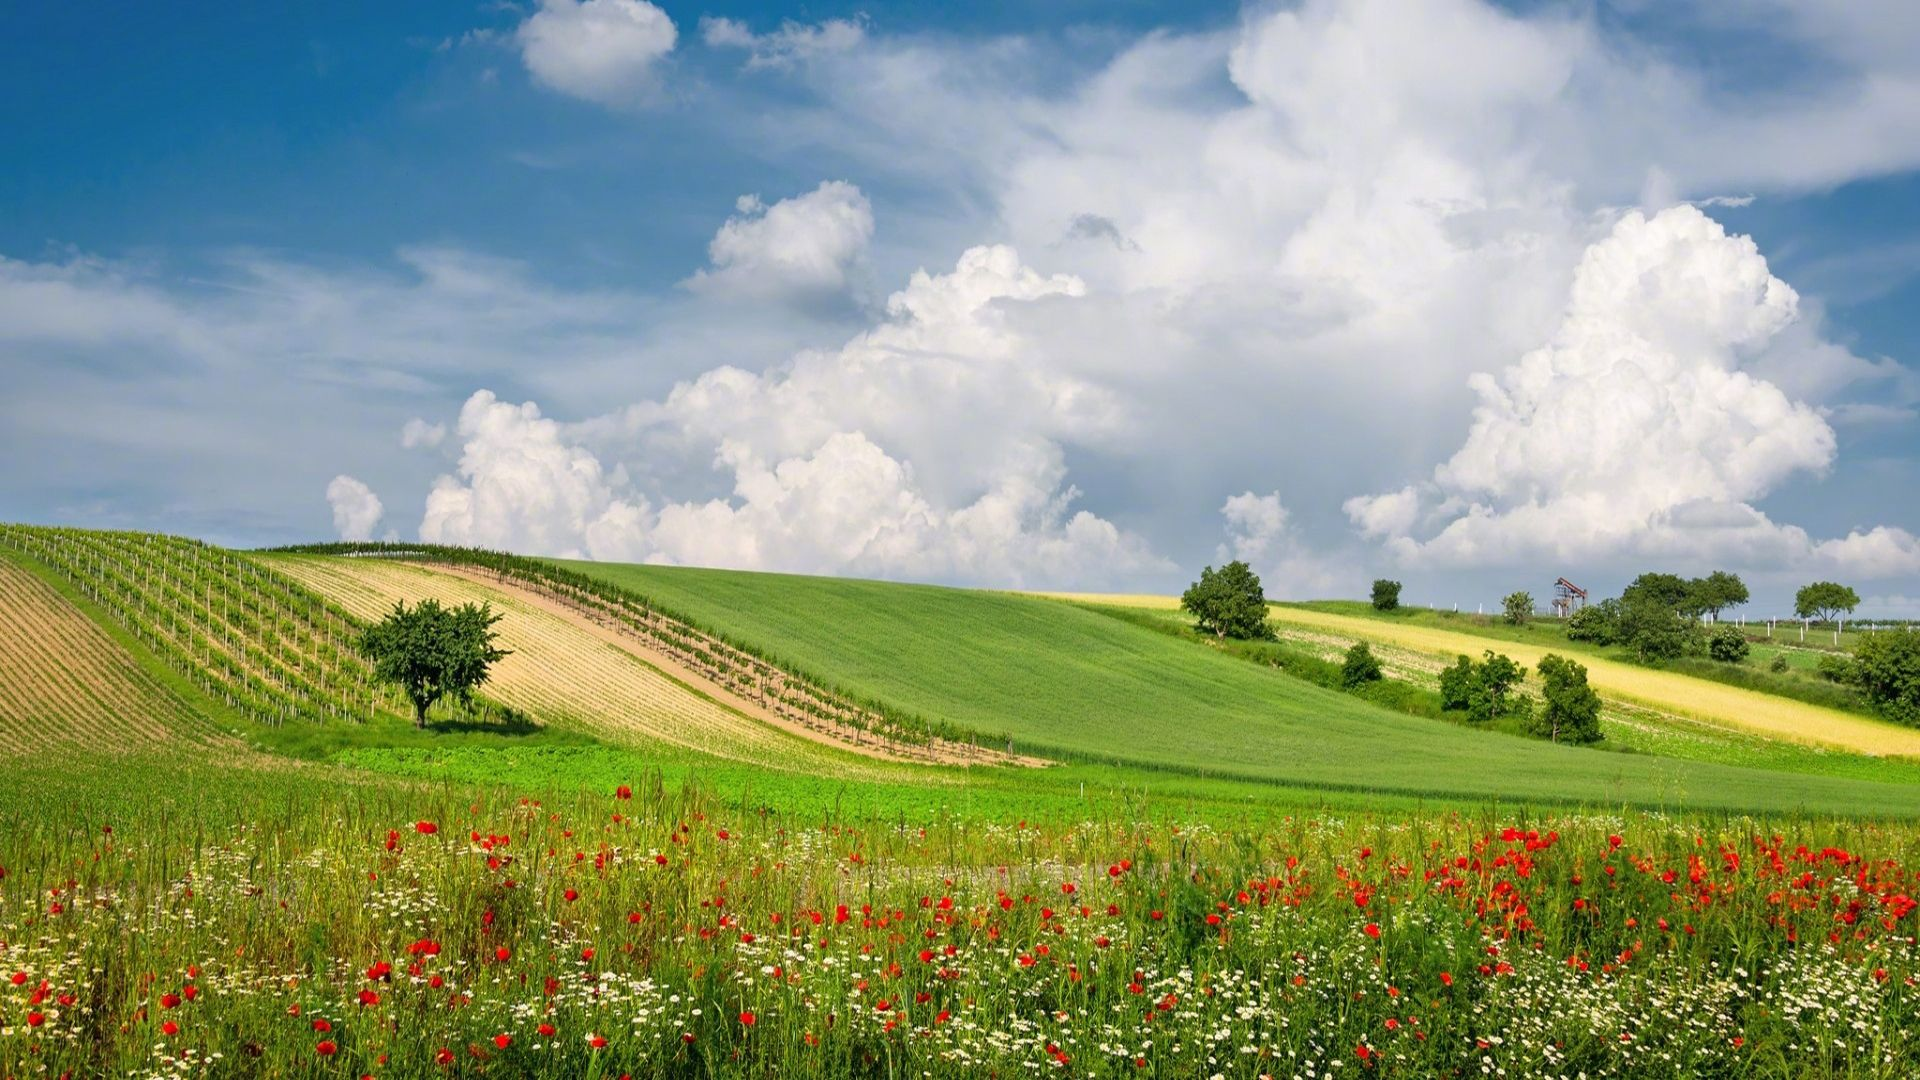 Pictures Of Nature With Fields And Meadows